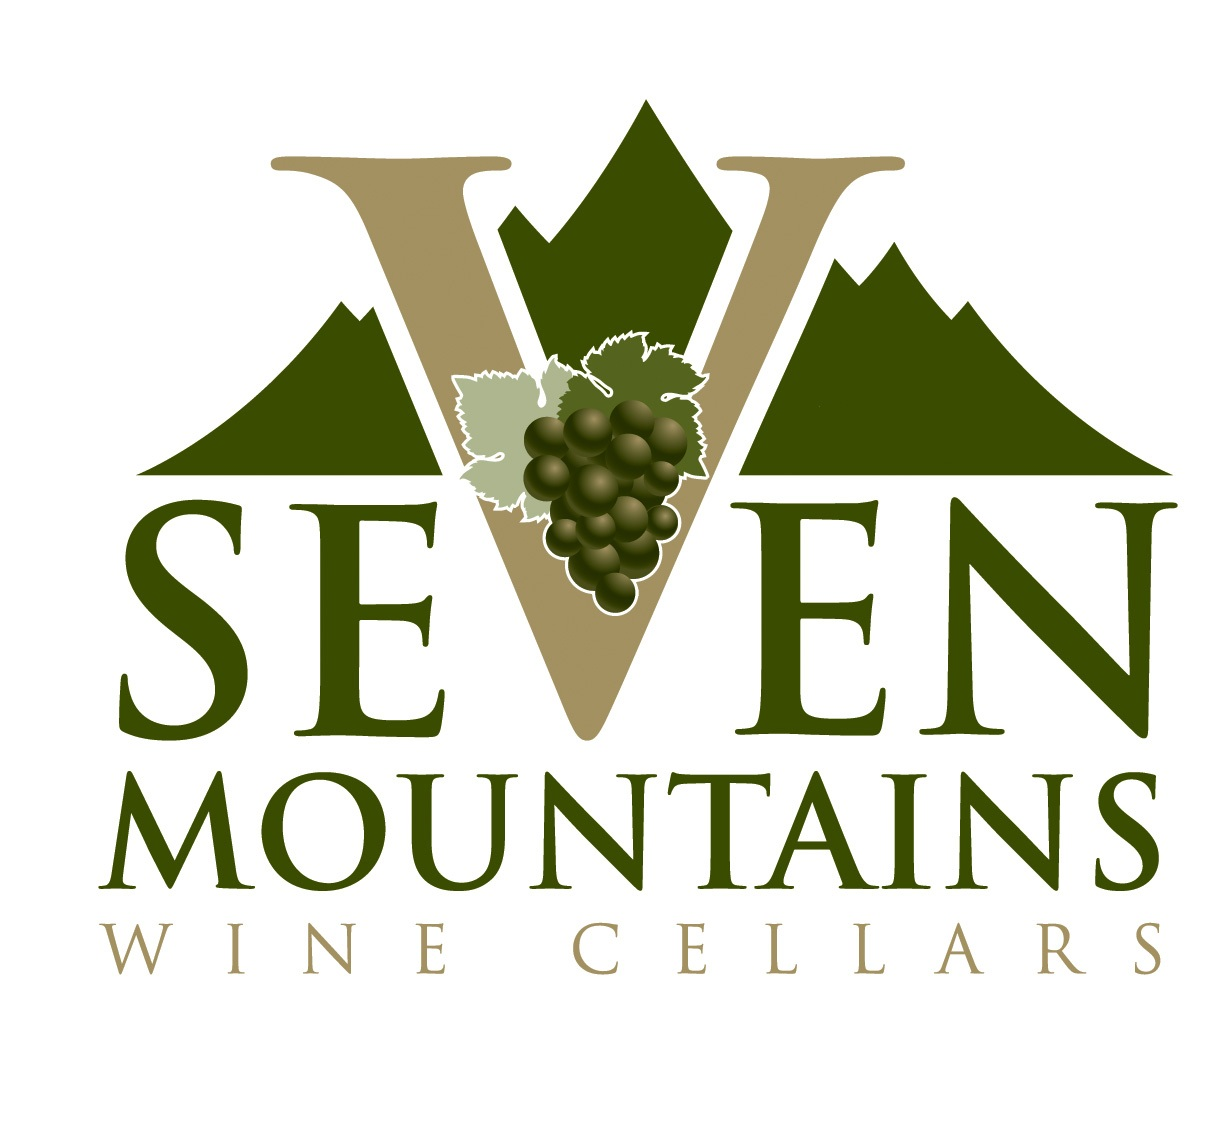 Seven Mountains Wine Cellar